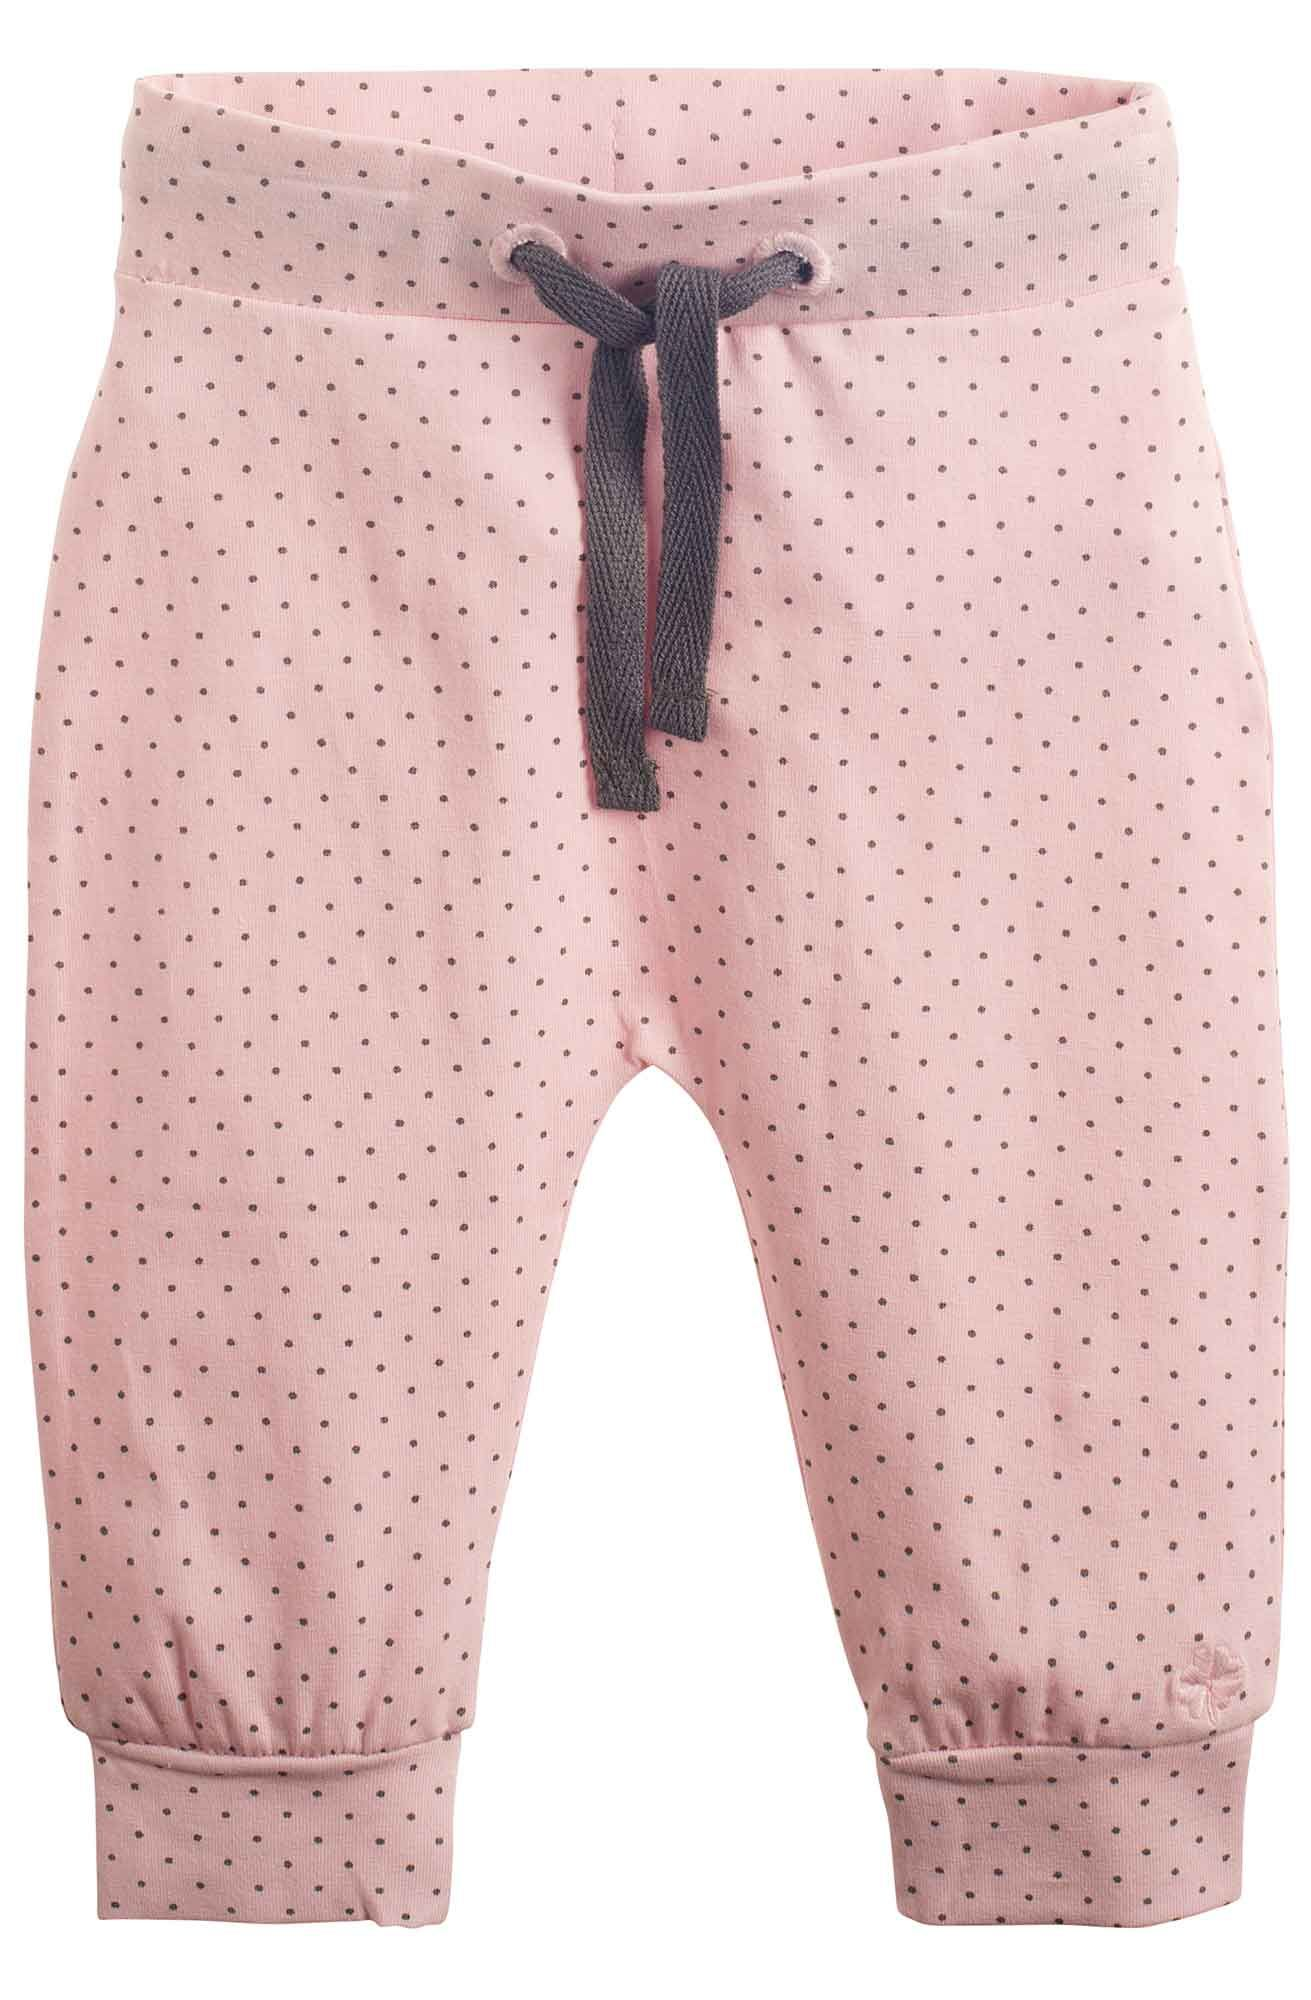 Noppies polka dot pink baby trousers newborn baby girl clothes uk